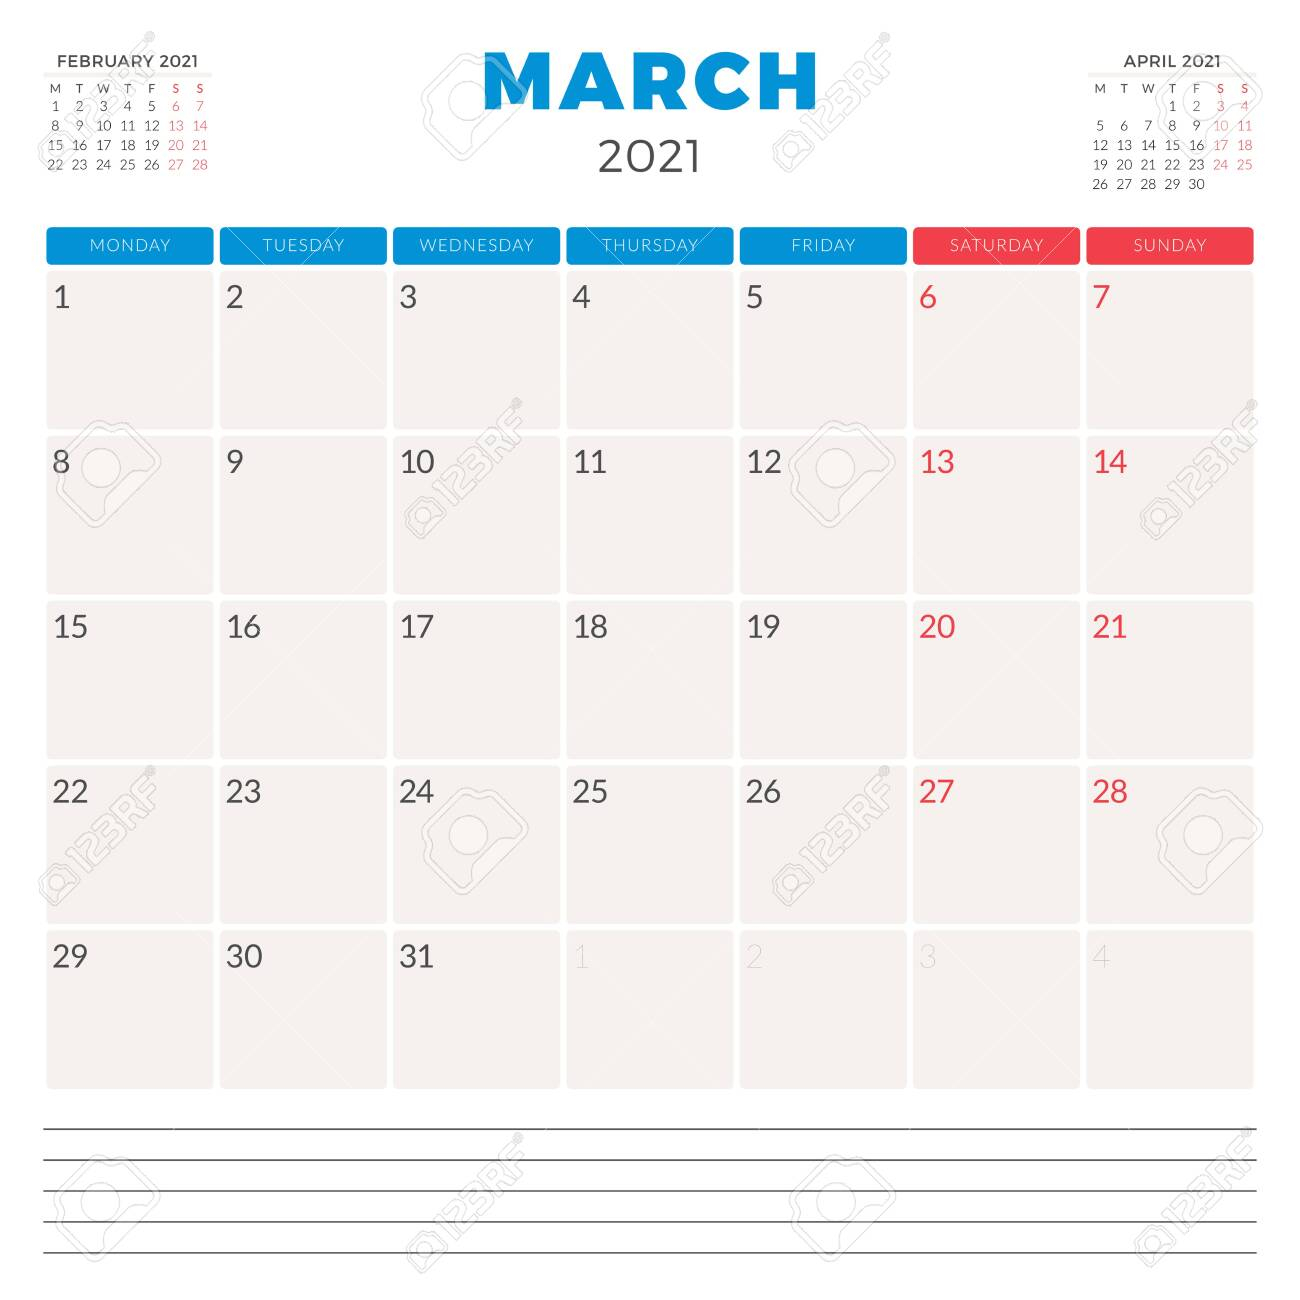 photo stock vector calendar planner for march 2021 week starts on monday printable vector stationery design template